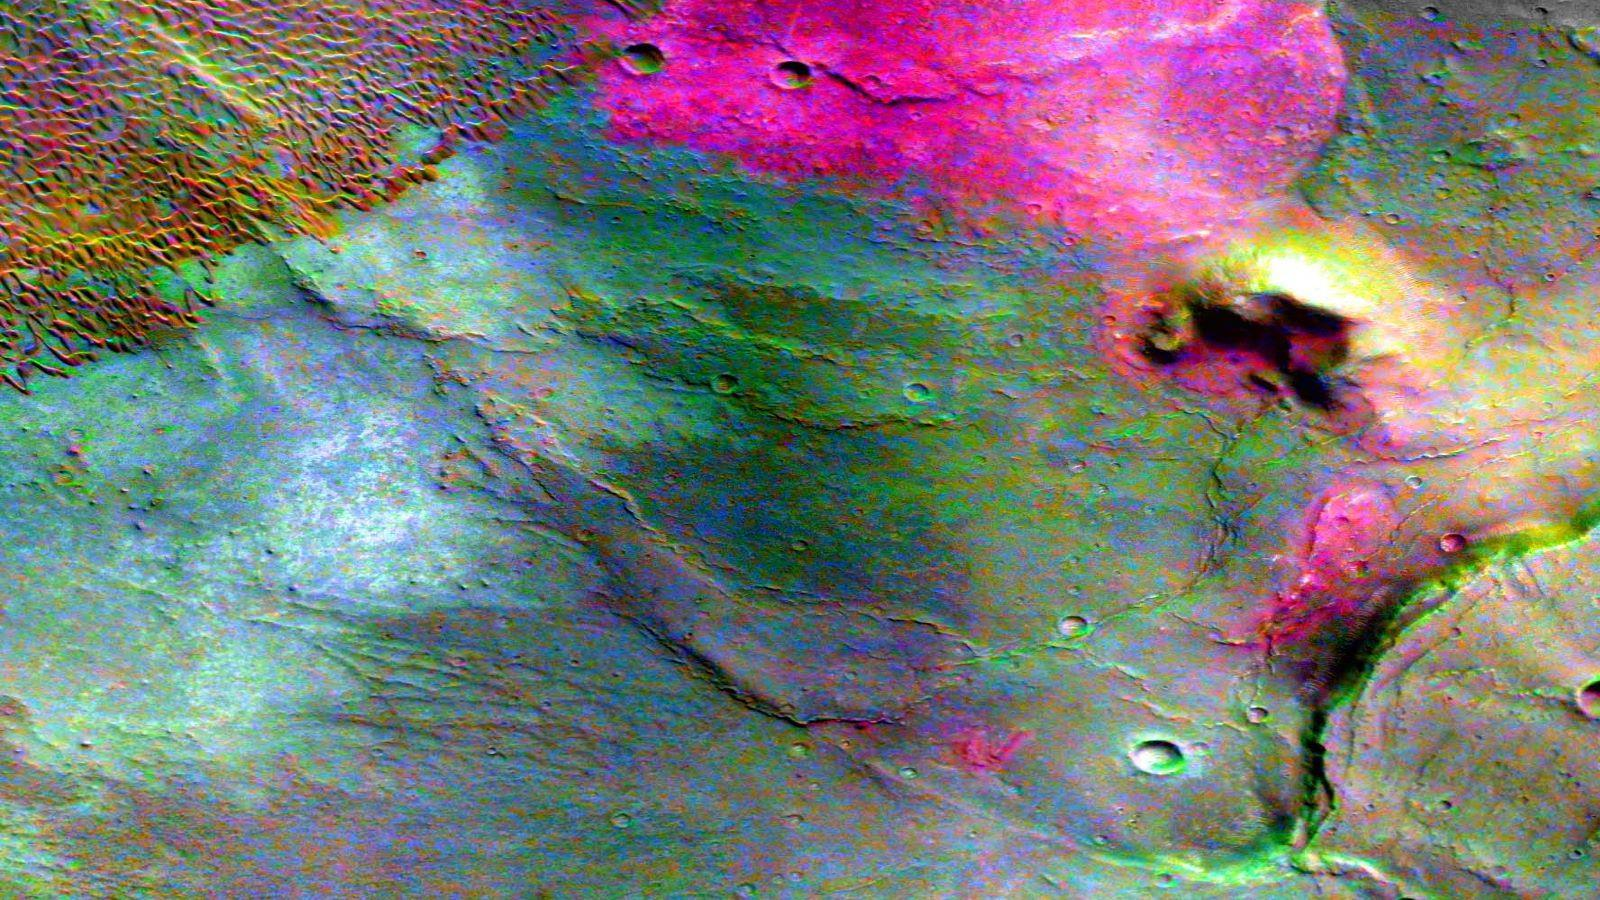 Mars_images-satellite_Nili_Patera_dacite_photos-by-NASA-and-ESA_best-selection-photography